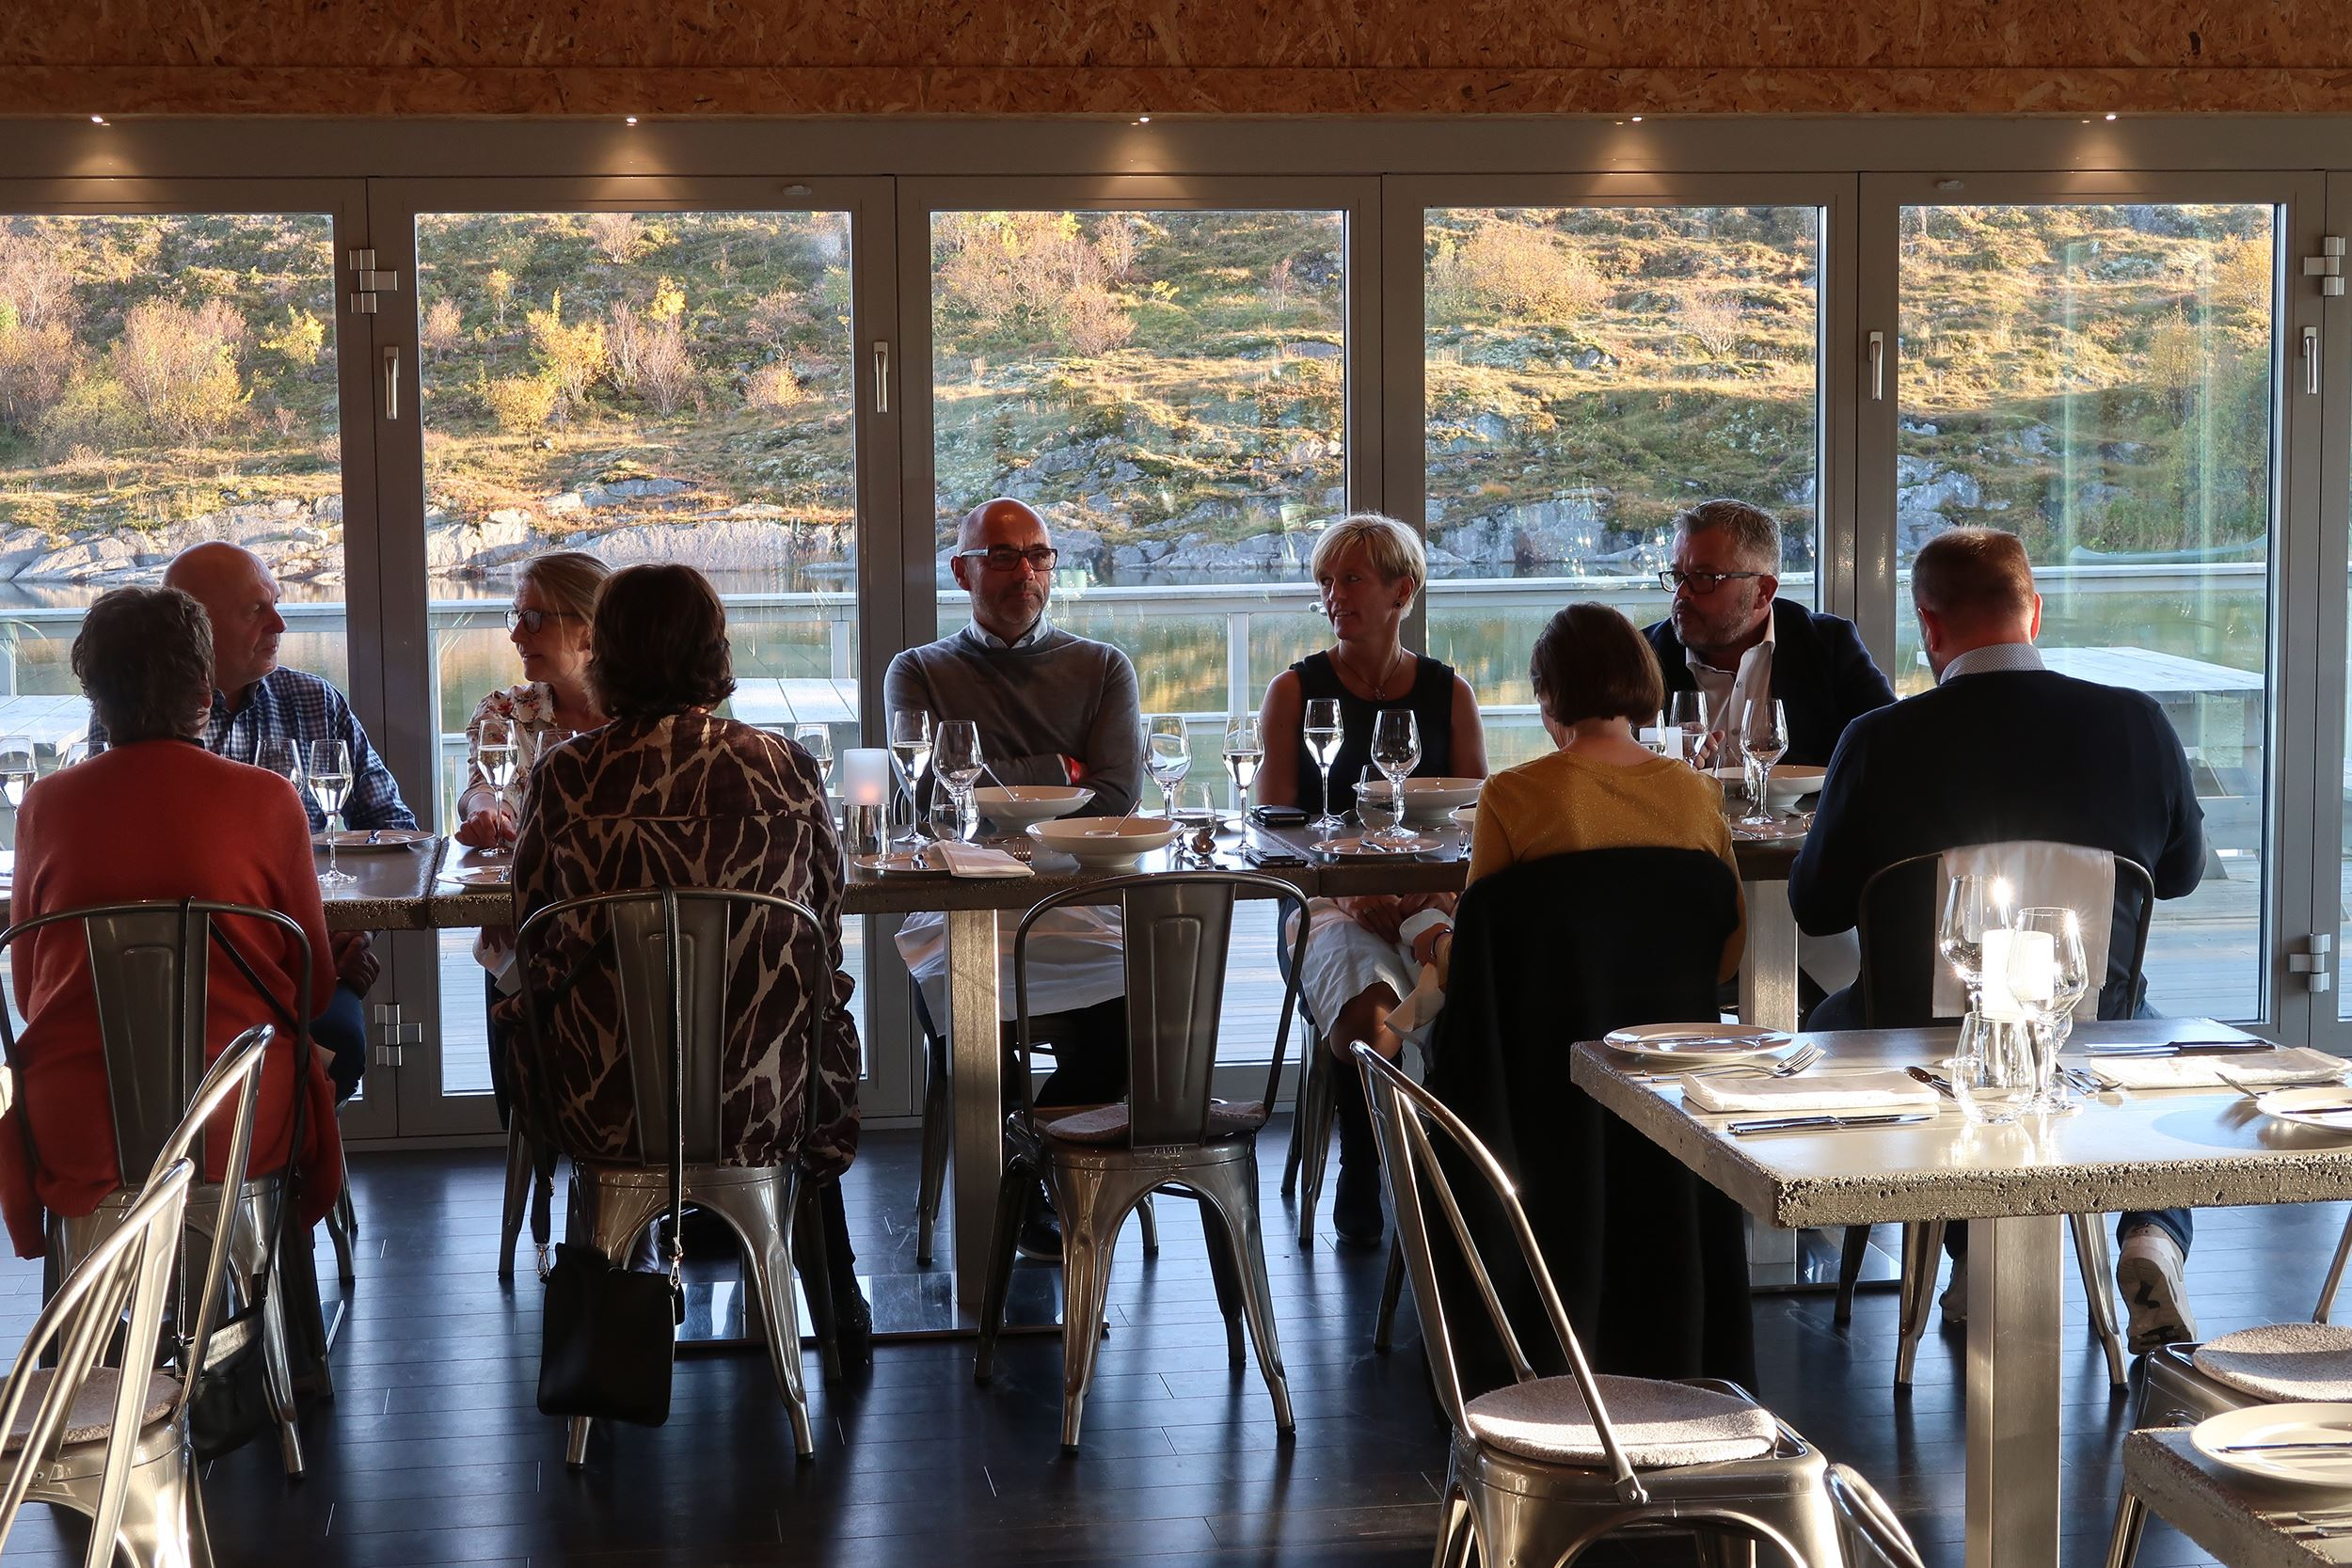 Restaurantopplevelse på Torghatten Strandrestaurant